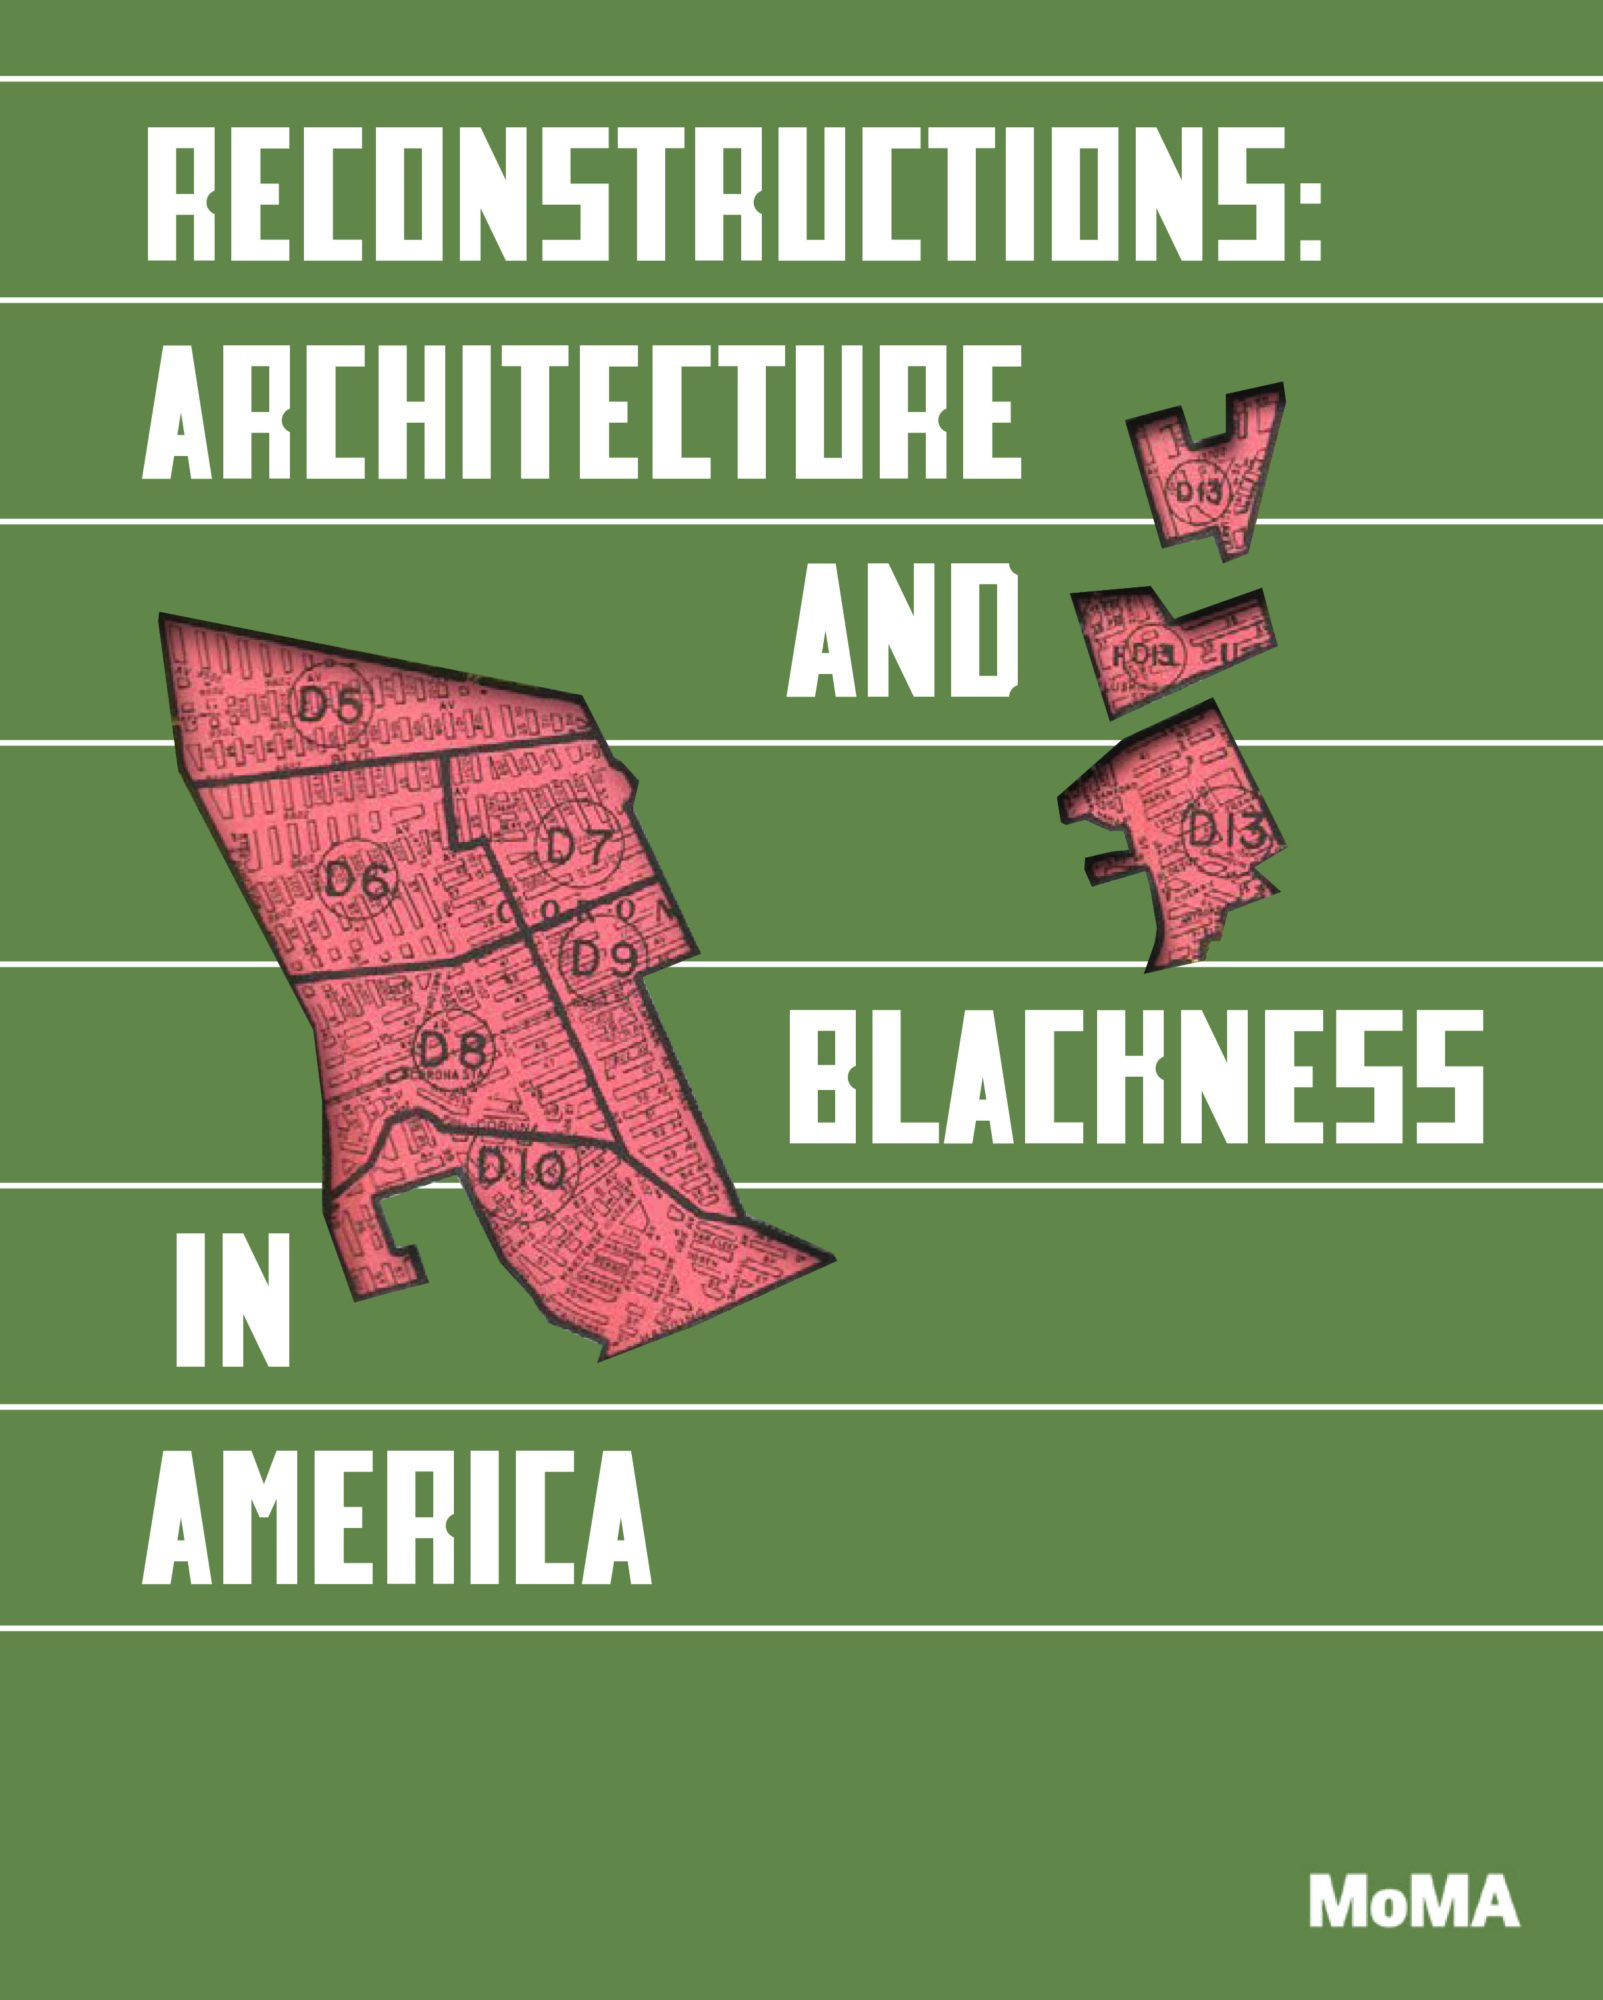 MoMA Cover of the exhibition catalogue Reconstructions: Architecture and Blackness in America, published by The Museum of Modern Art, 2021.